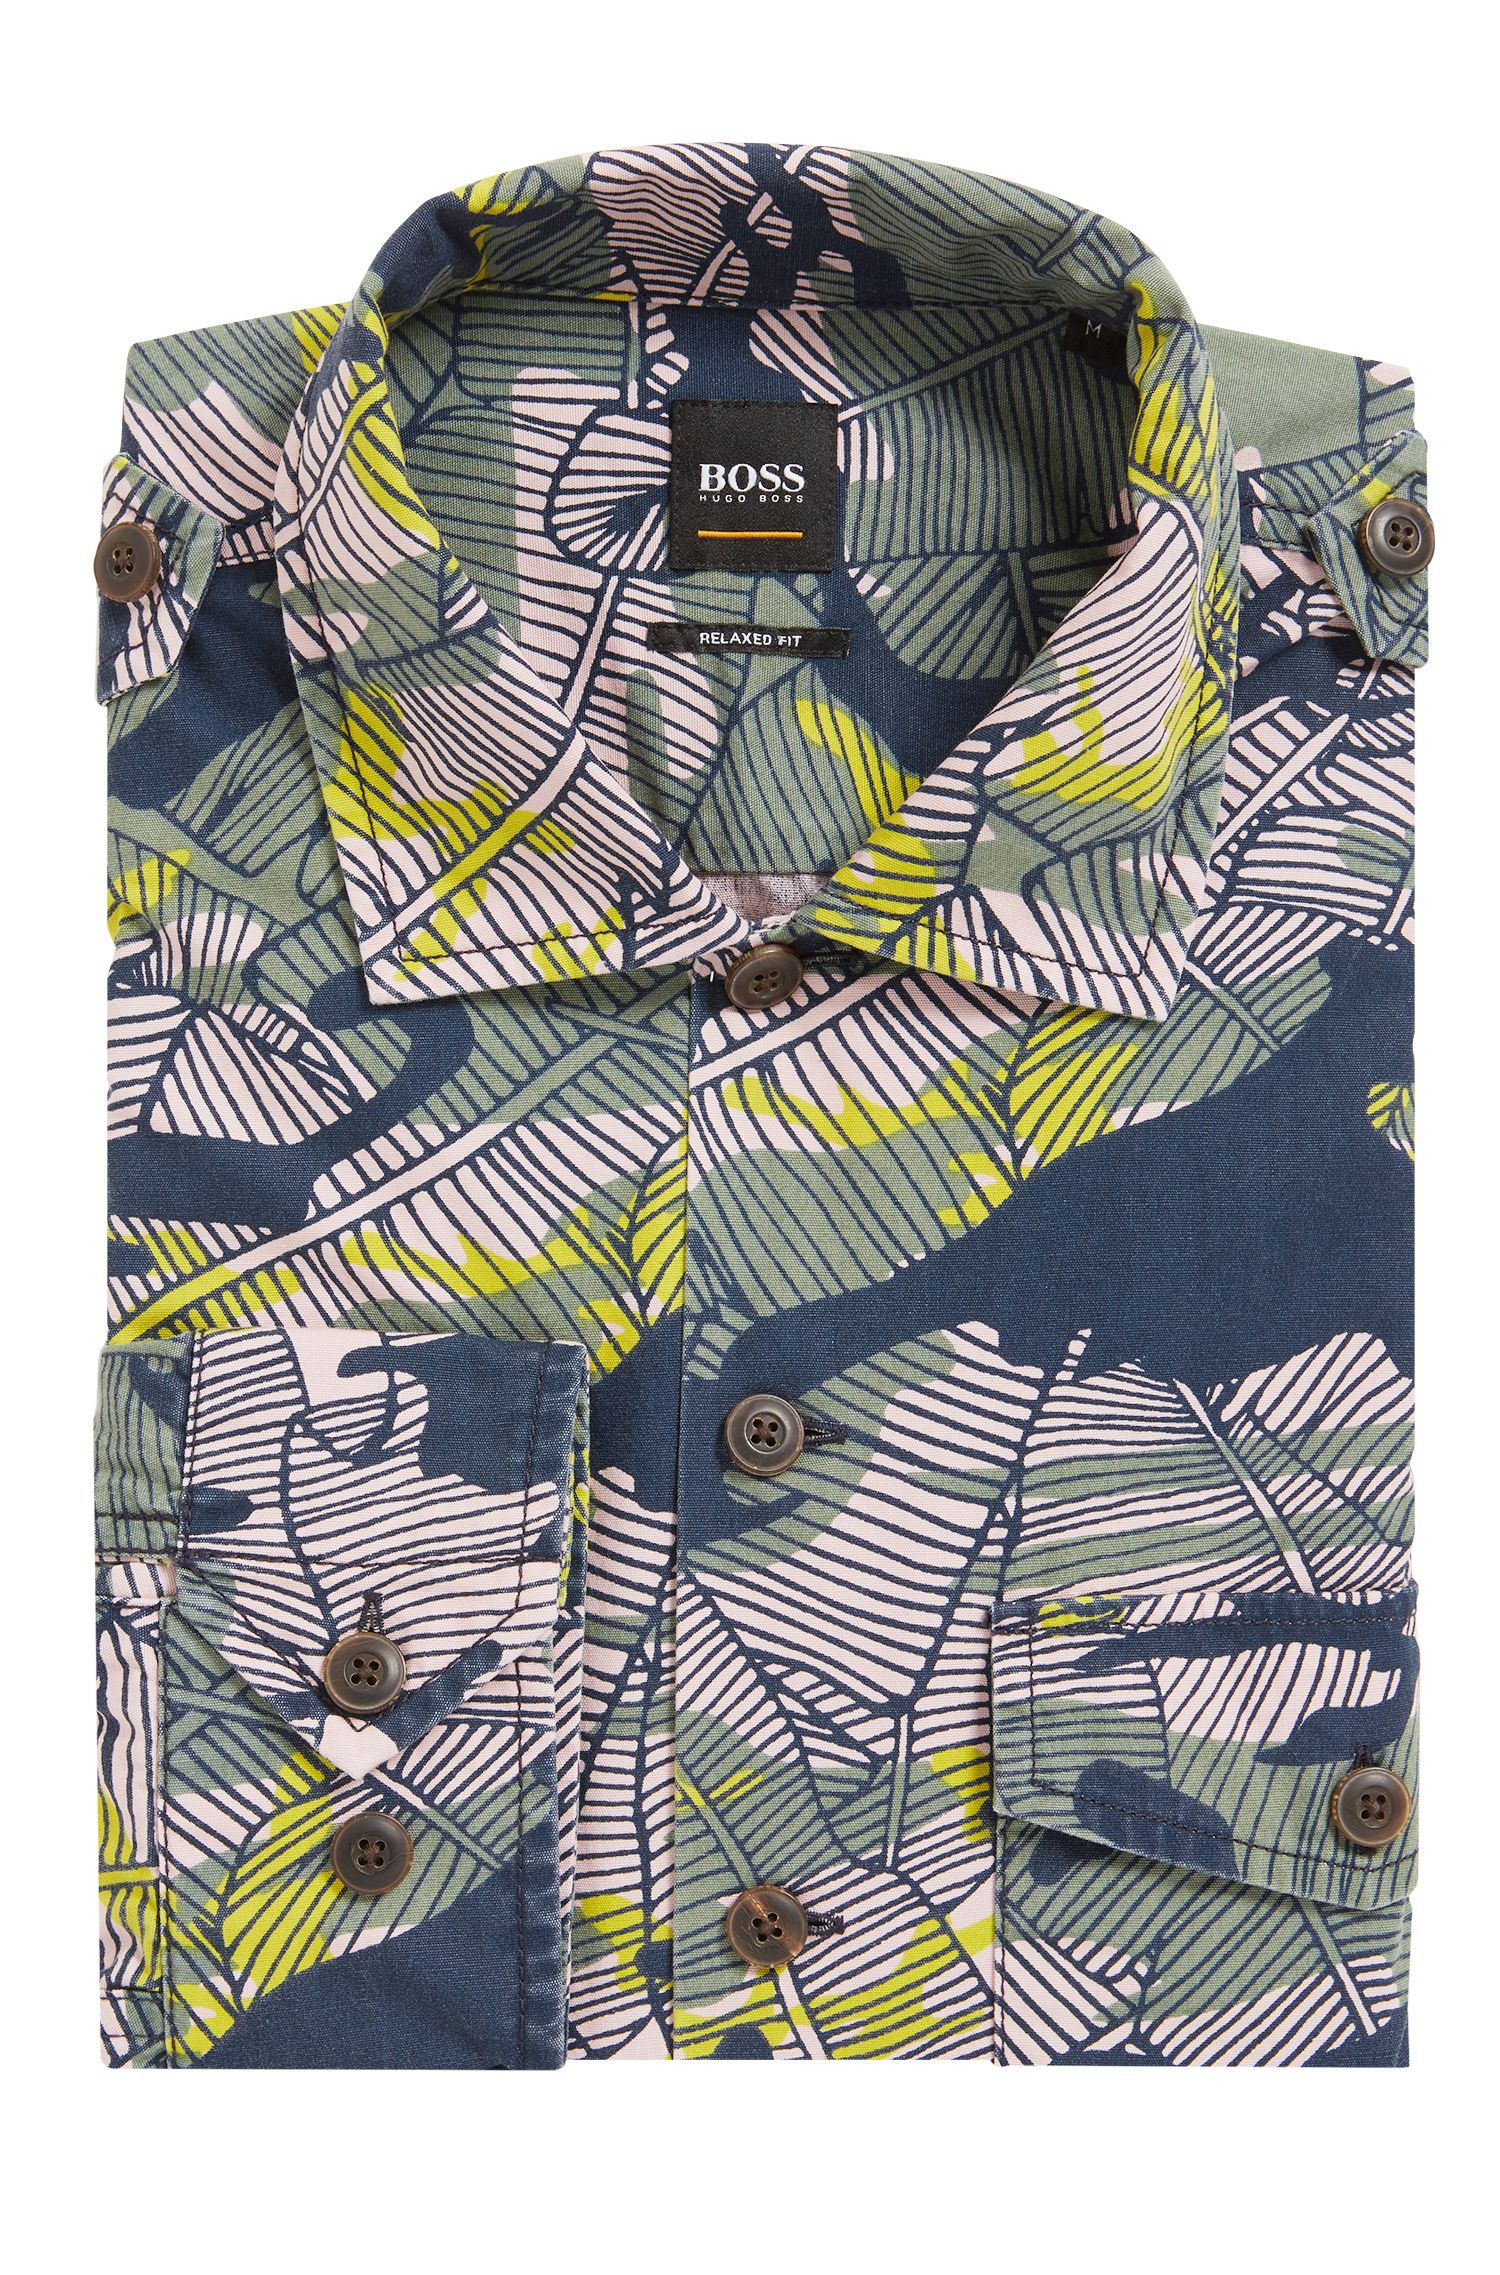 Relaxed-fit cotton shirt in Caribbean-inspired camouflage print BOSS